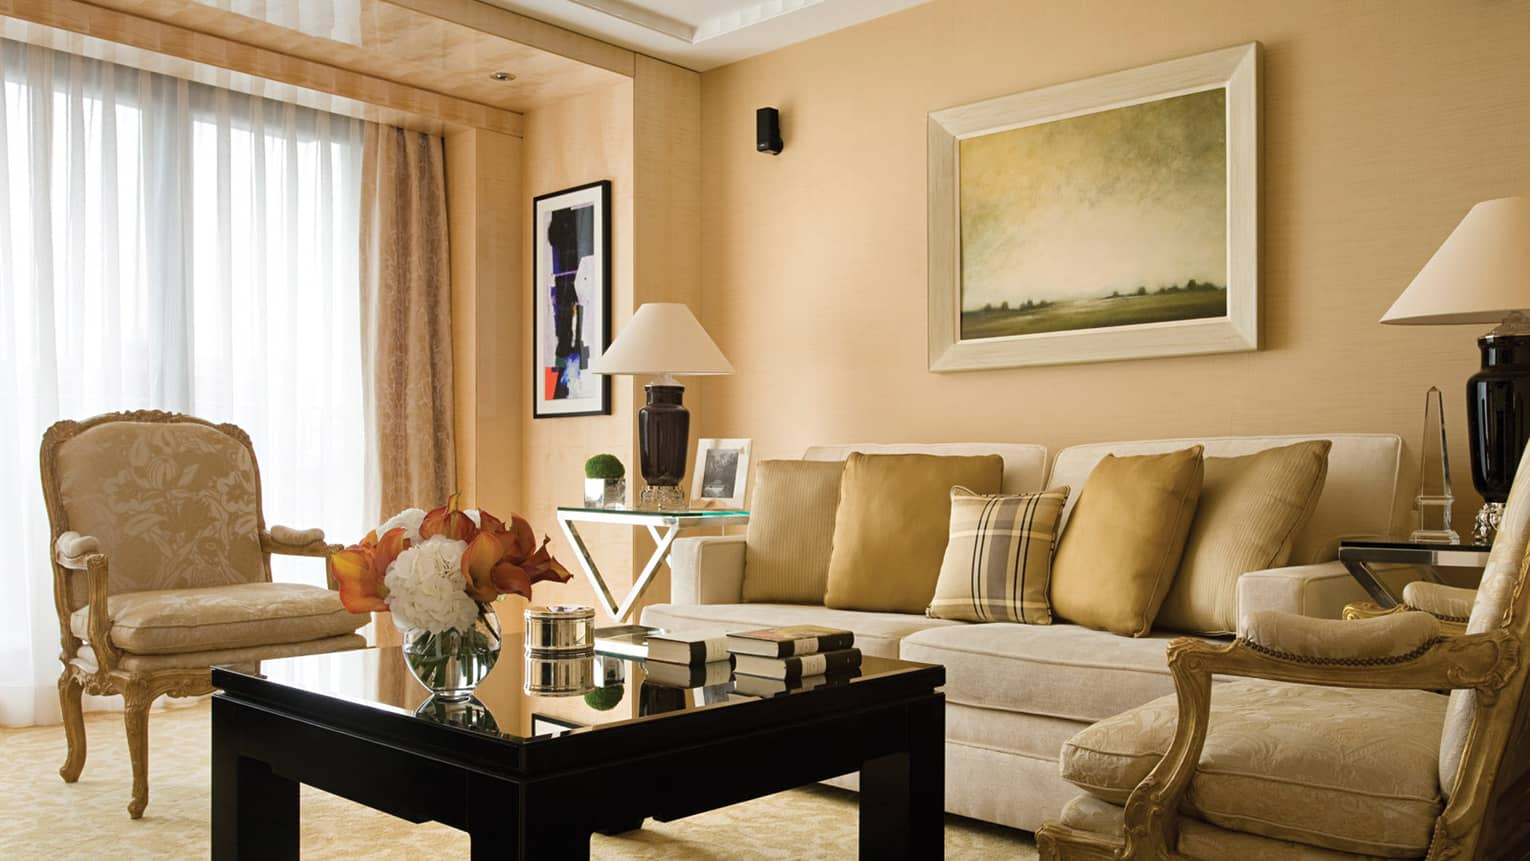 One-bedroom Suite living room with gold accent chairs, flowers and books on black coffee table